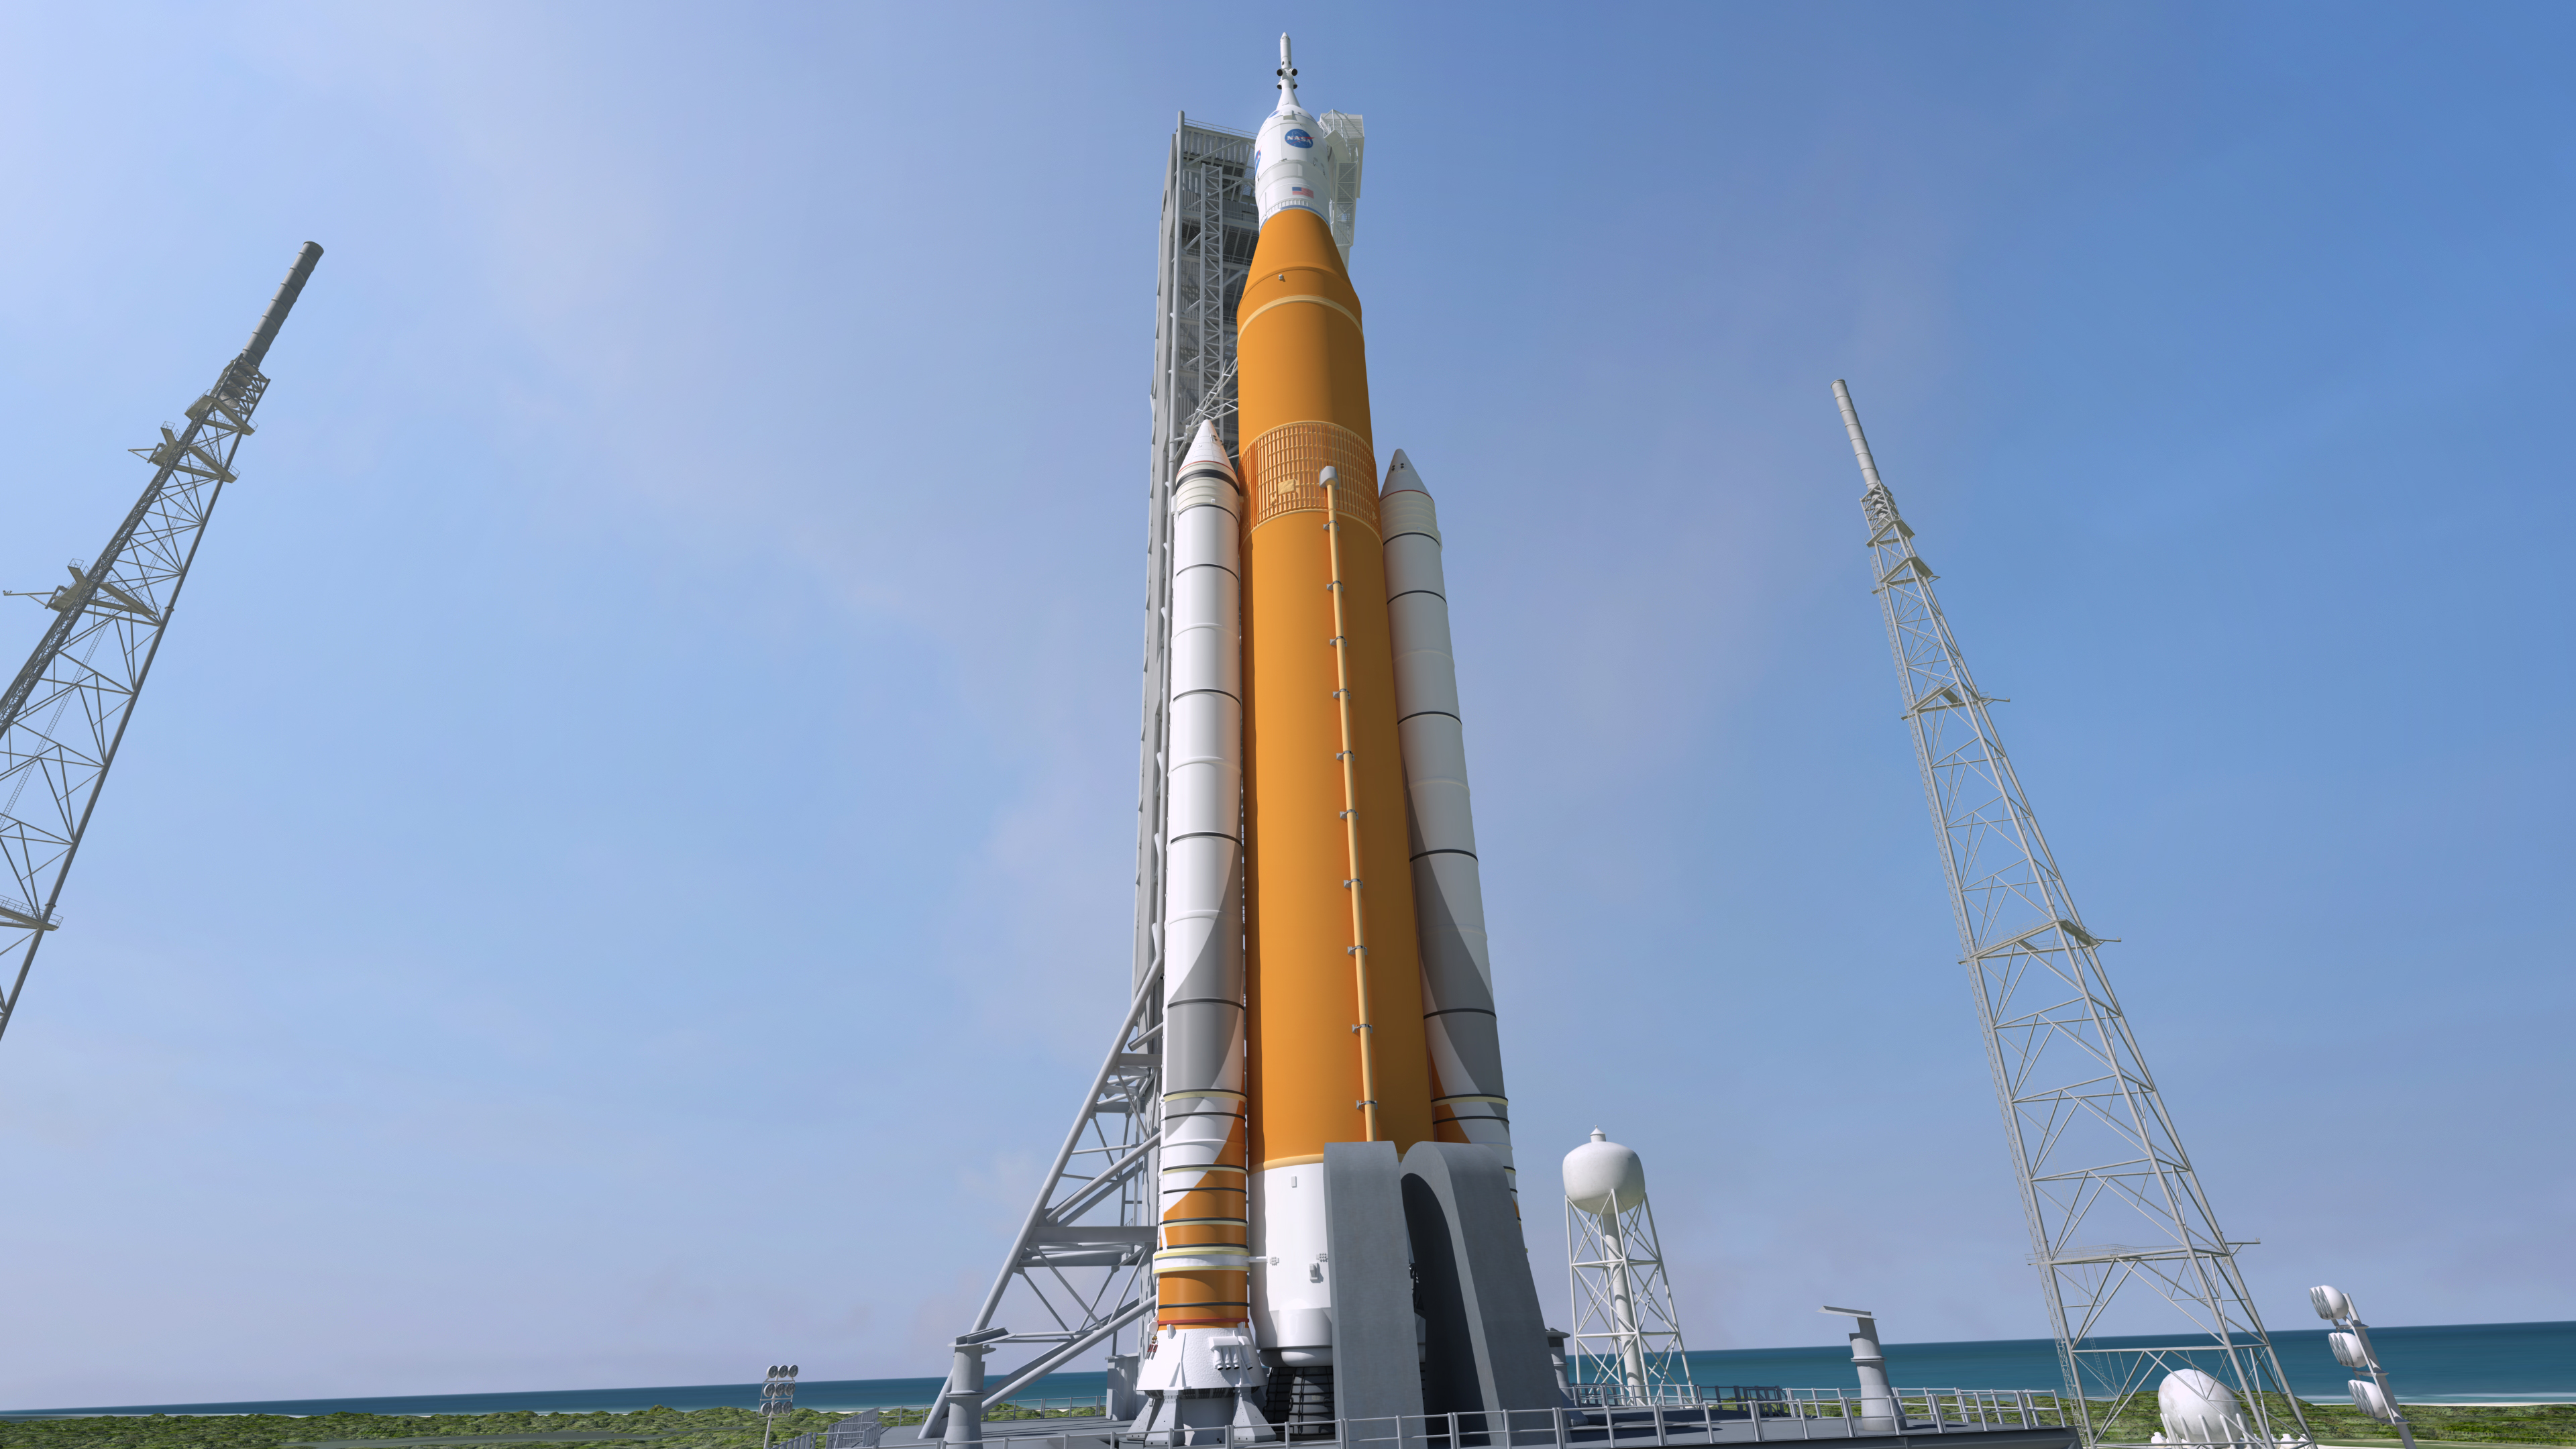 sls new space shuttle - photo #37